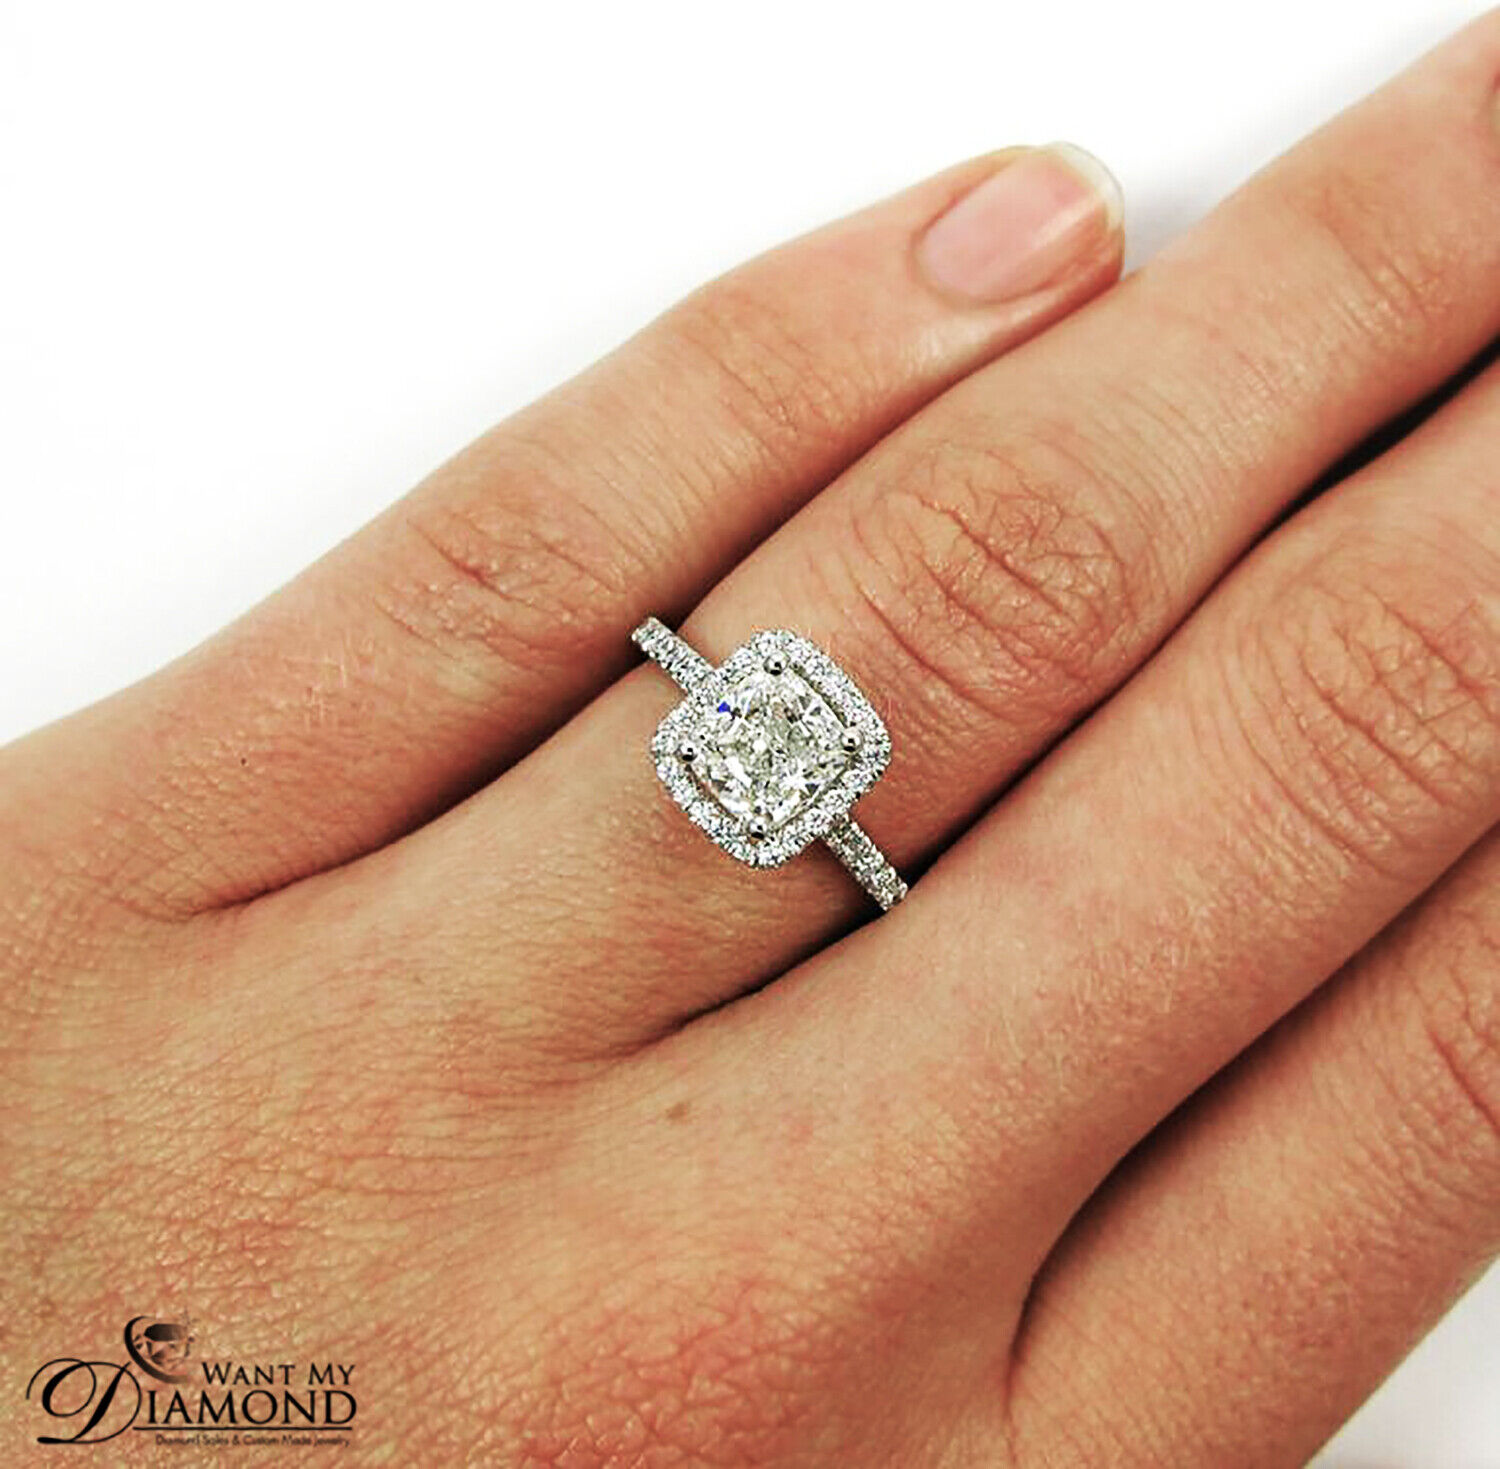 1.34ctw. Natural Cushion Classic Pave Diamond Engagement Ring - GIA Certified